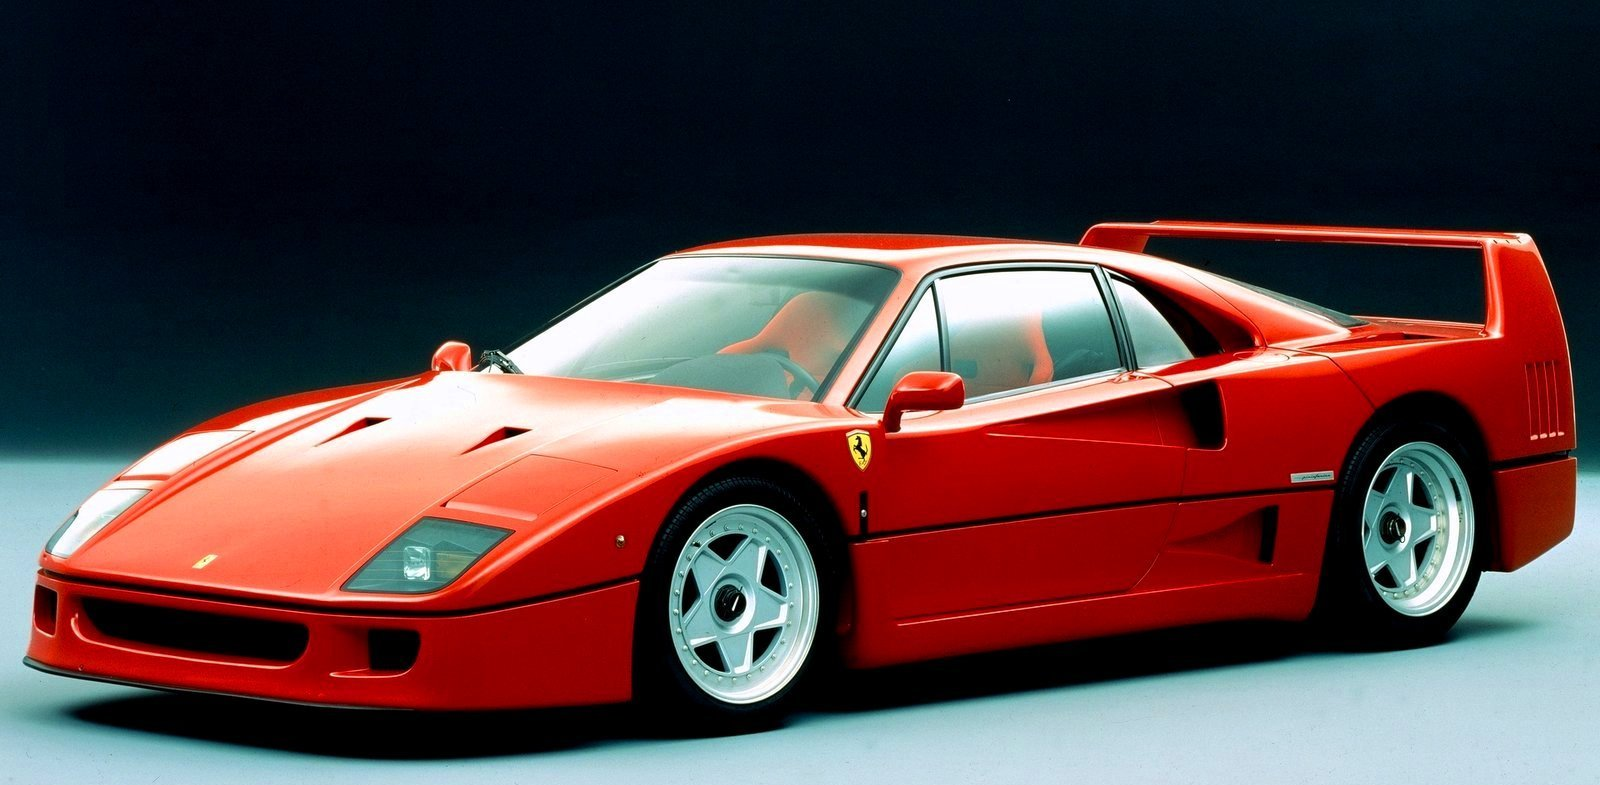 Ferrari F40 Latest News Reviews Specifications Prices Photos And Videos Top Speed